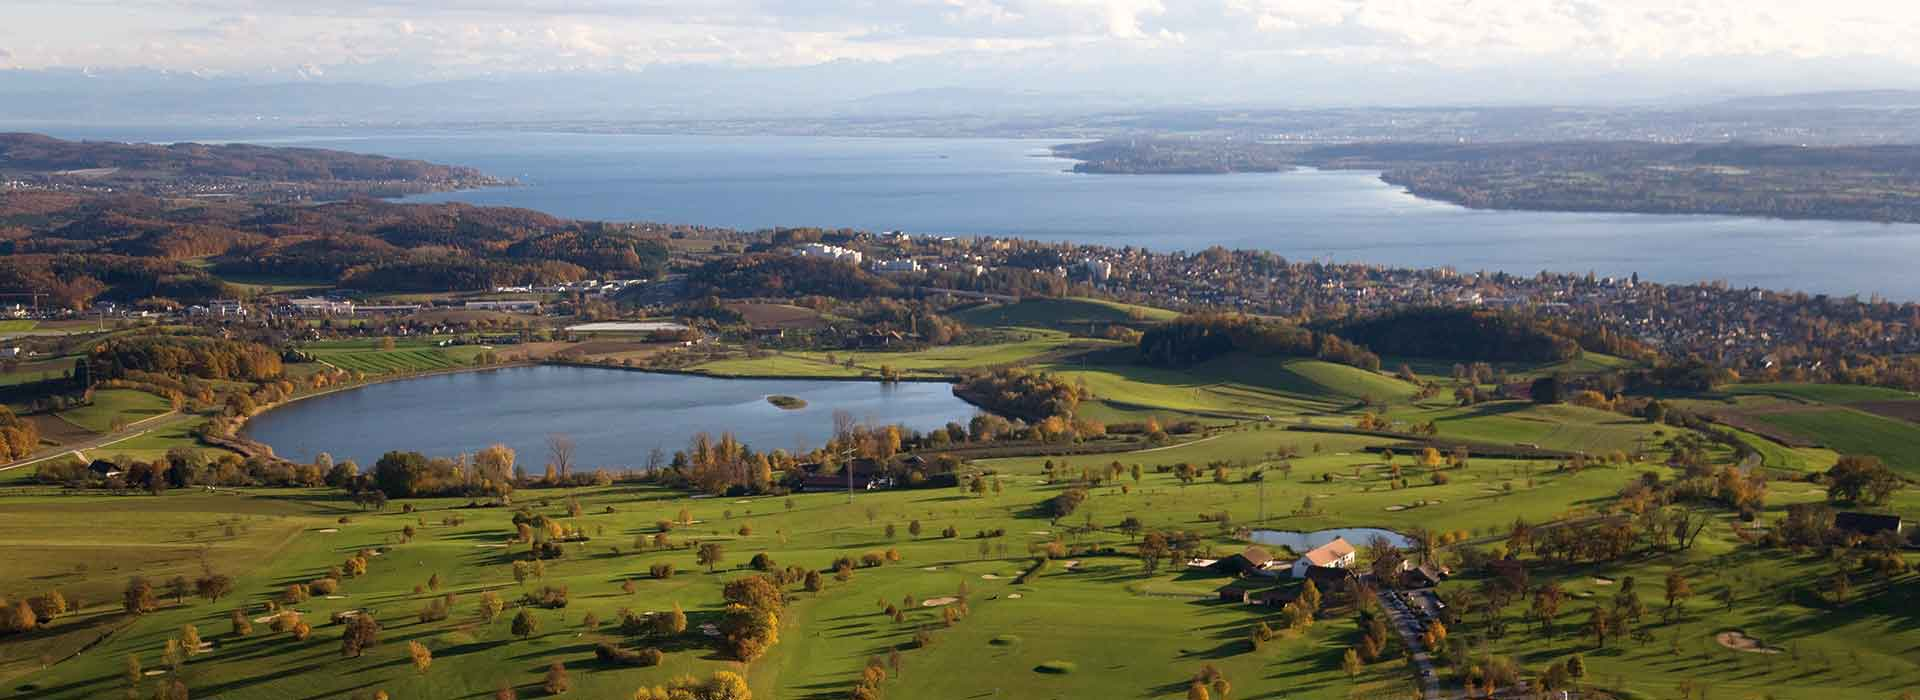 GC Owingen Golf Bodensee Totale